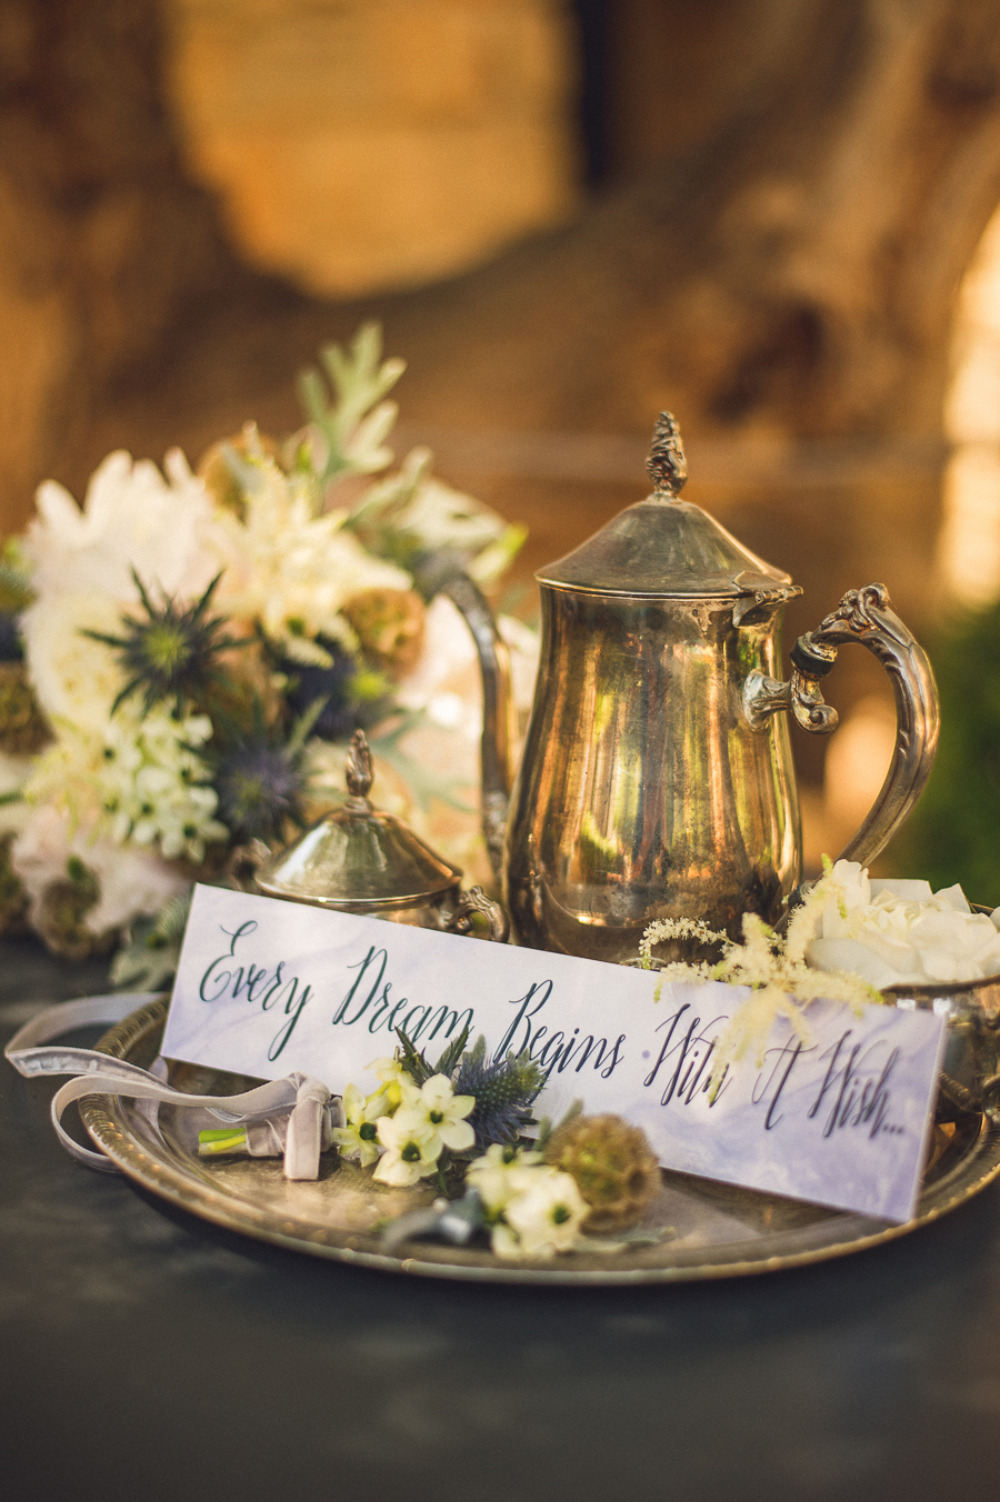 every dream begins with a wish wedding sign